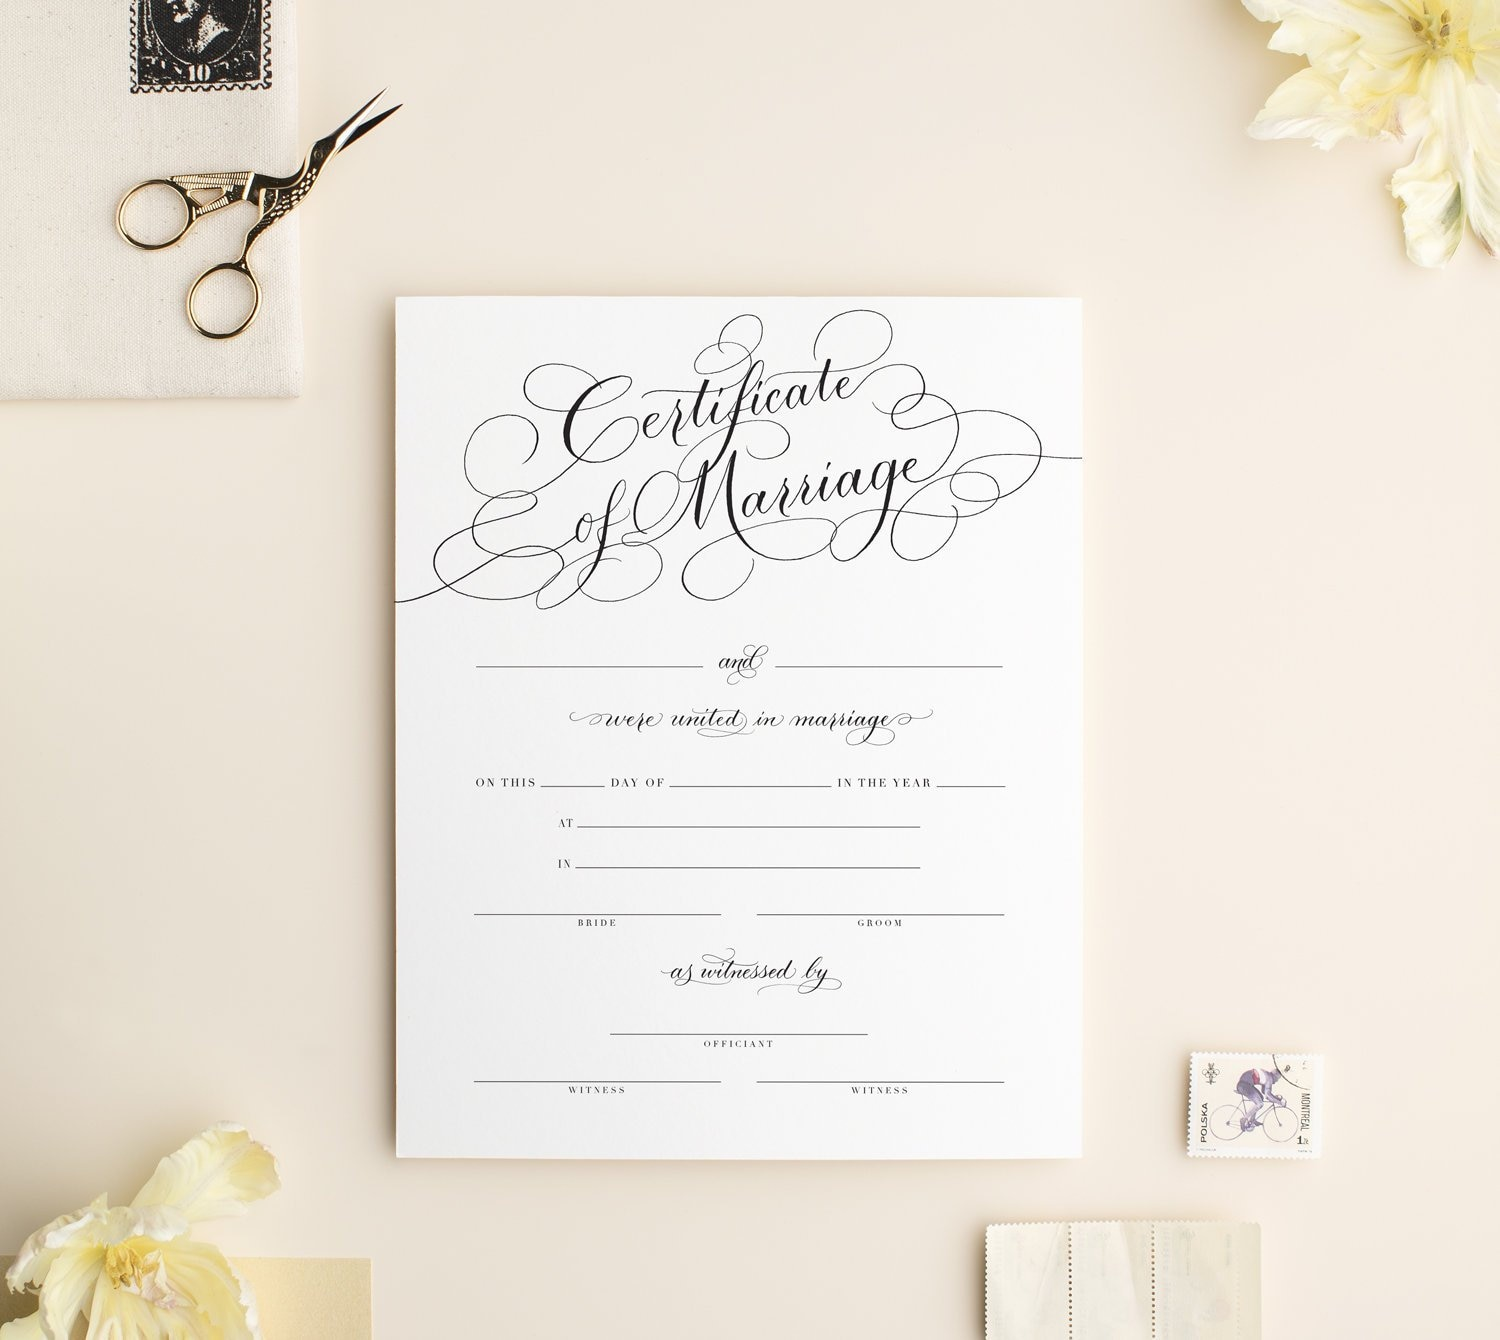 Marriage Certificate Wedding Certificate Black Etsy